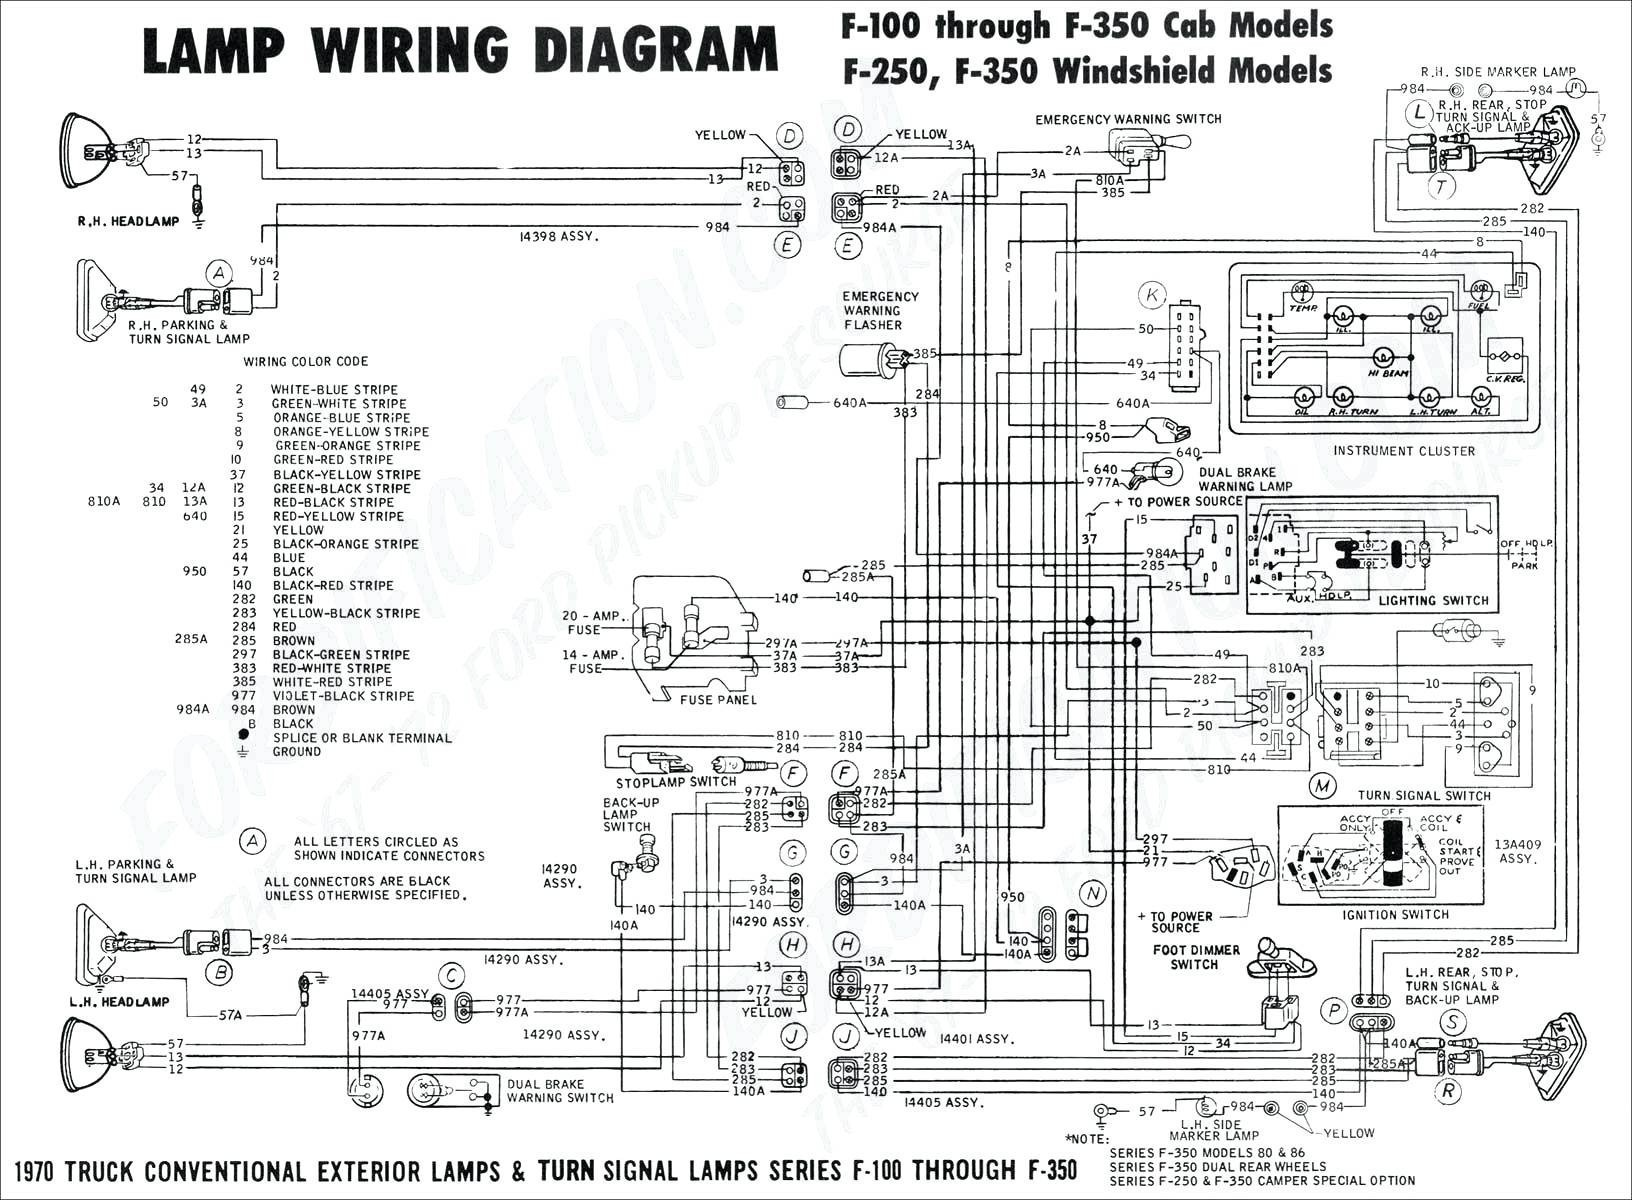 2001 Saturn Sl2 Engine Diagram 1999 Saturn Sl Fuse Box Wiring Diagram toolbox Of 2001 Saturn Sl2 Engine Diagram